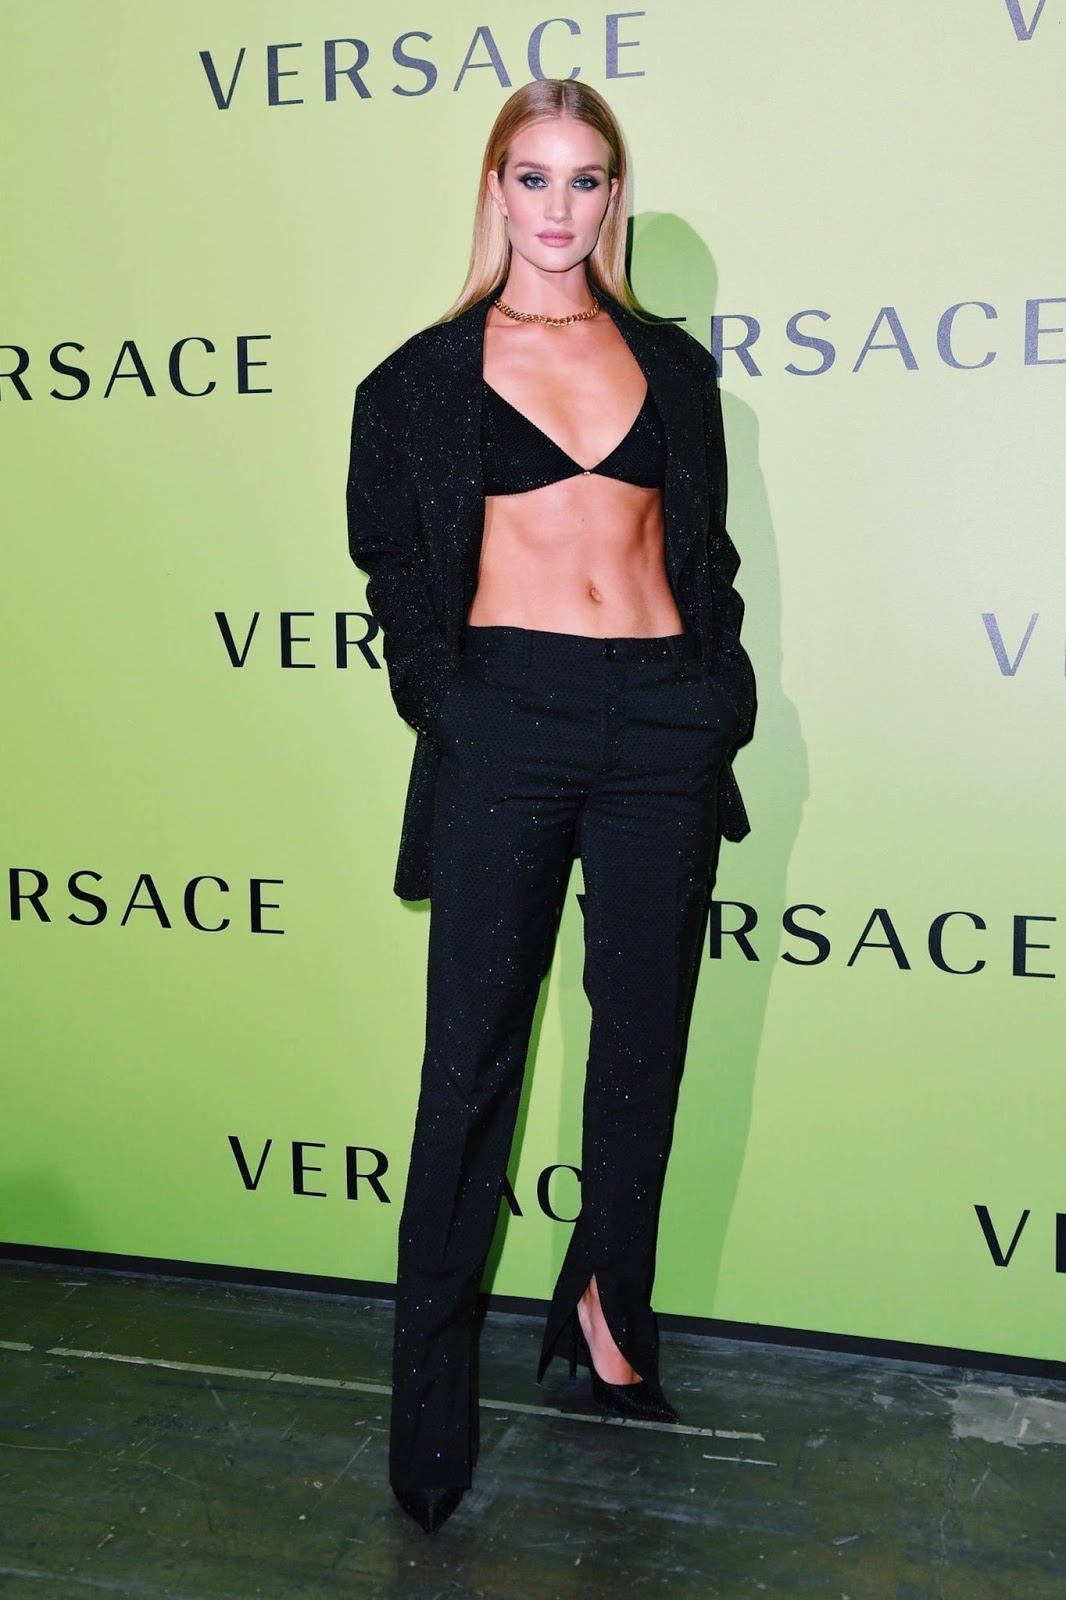 Rosie Huntington-Whiteley flaunts her washboard abs in a sparkly bra at Versace's Milan Fashion Week show